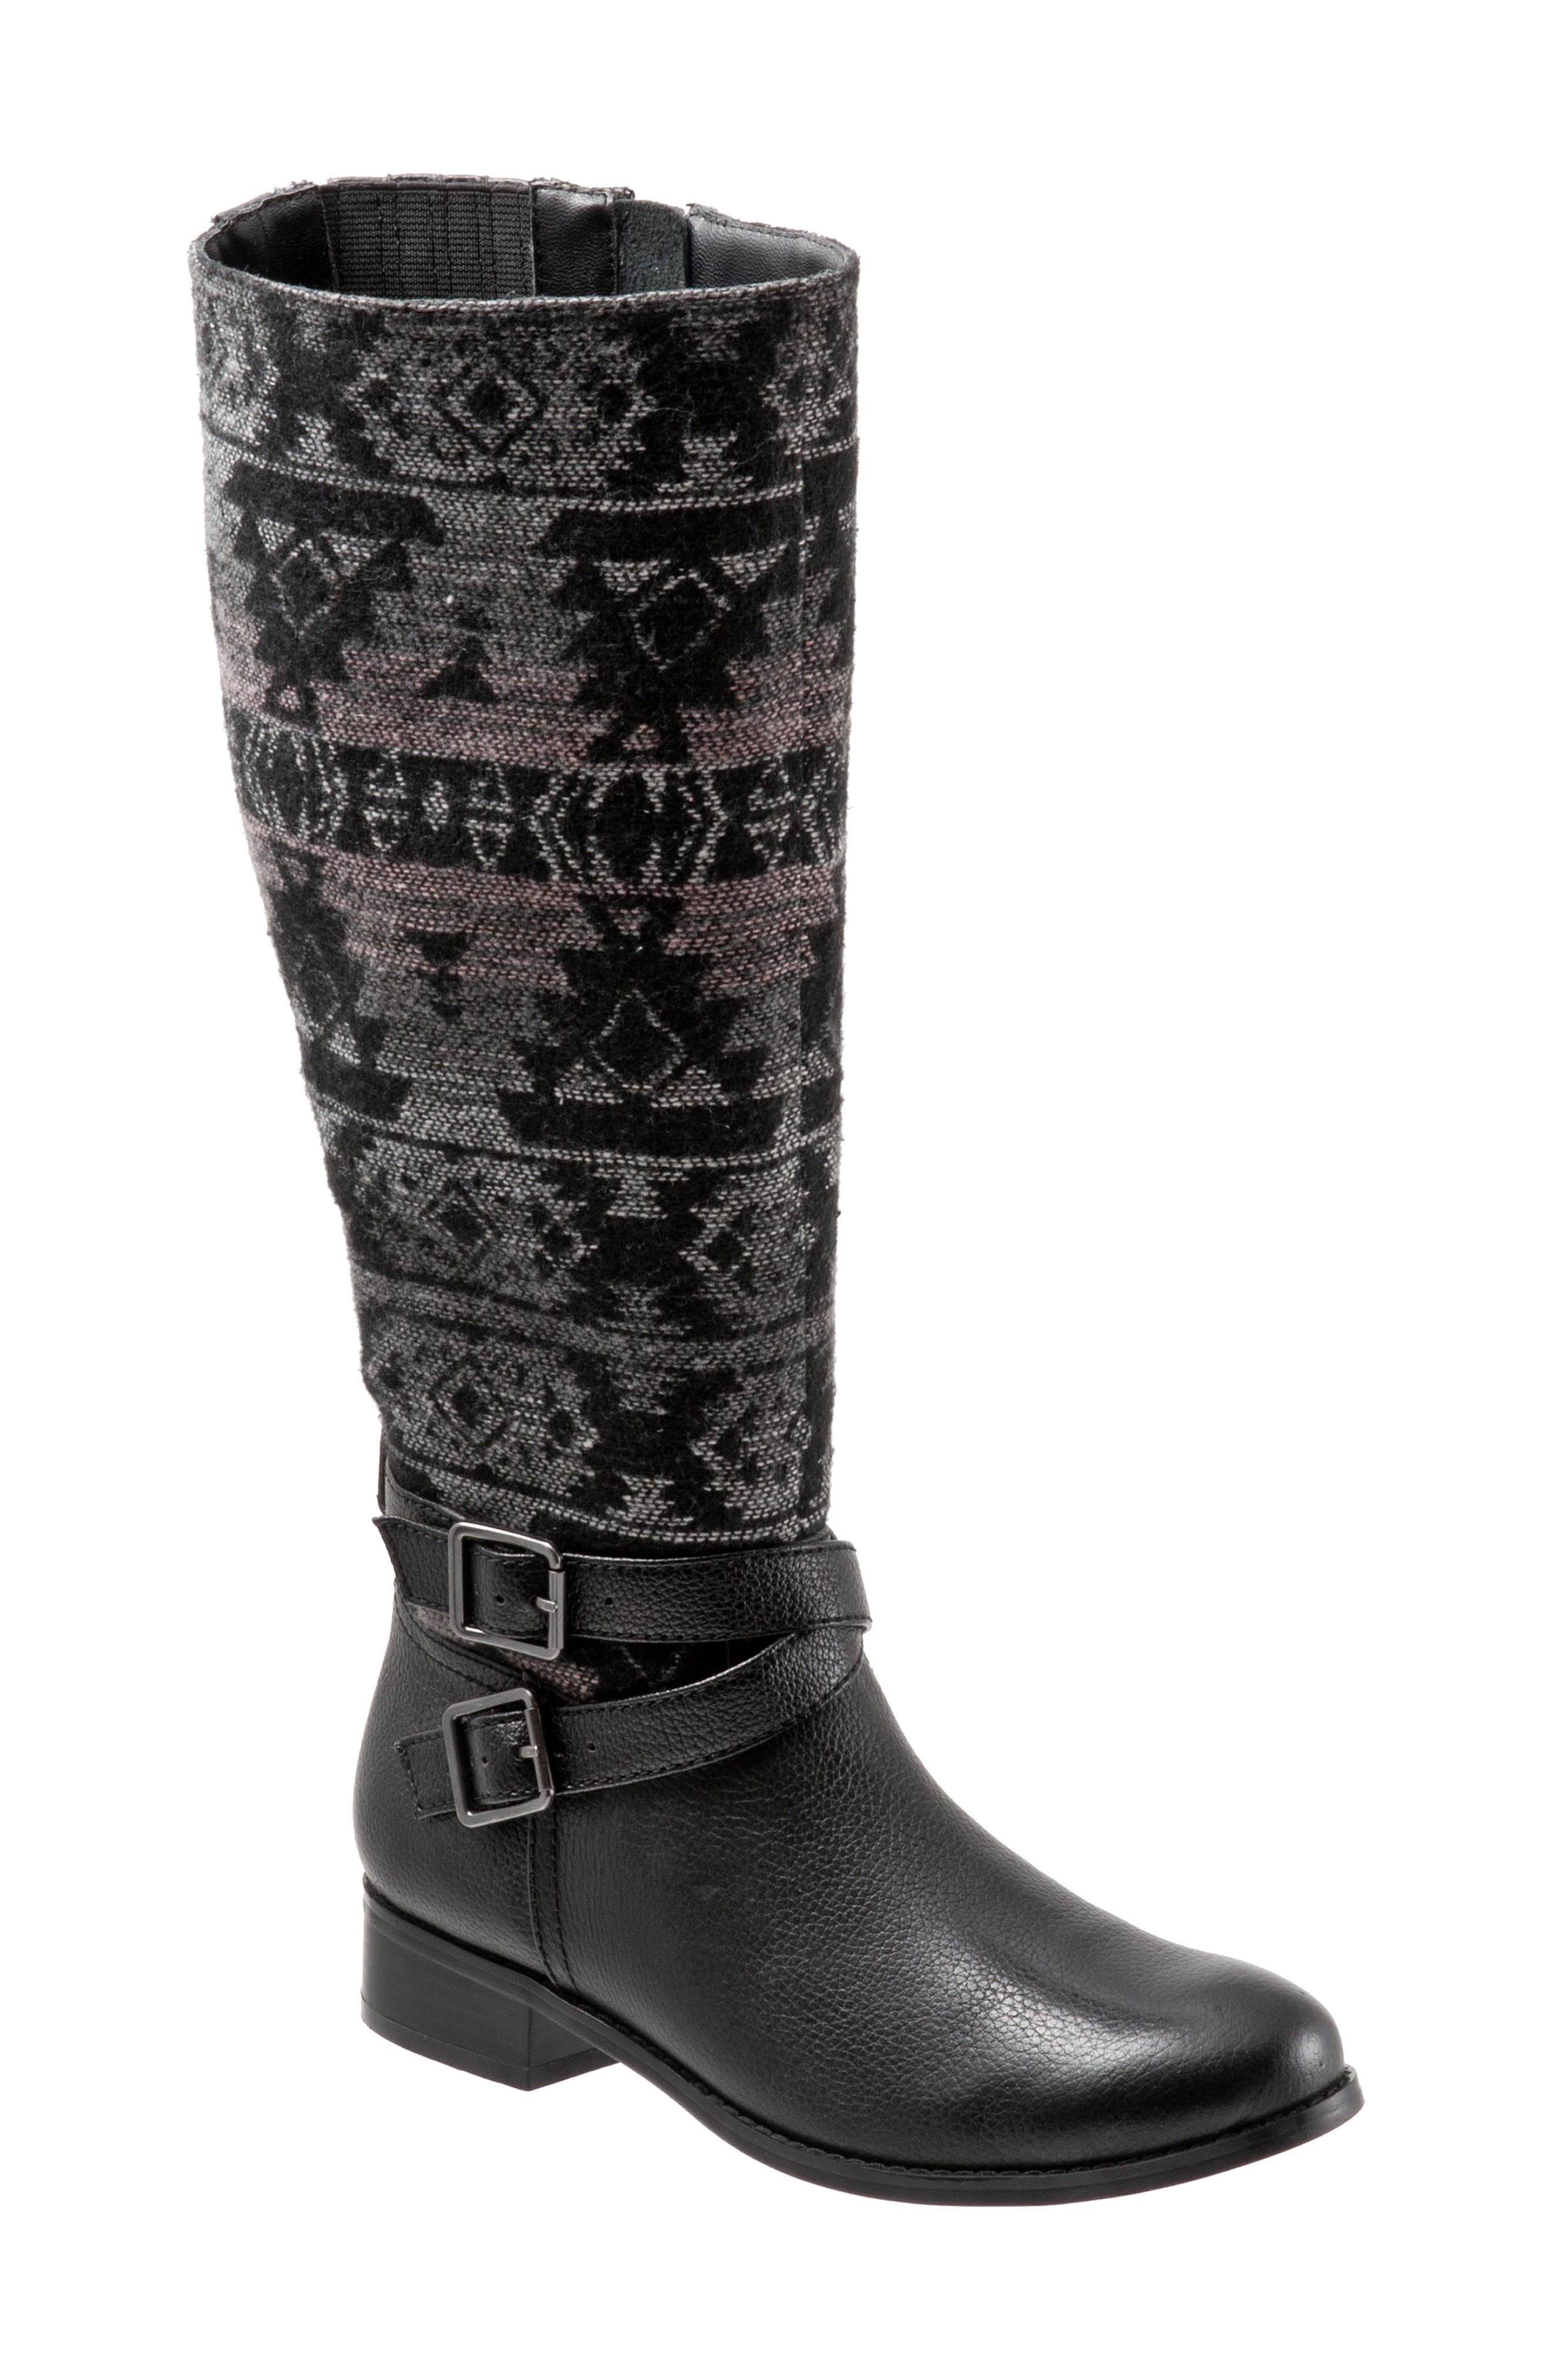 Trotters Liberty Knee High Boot